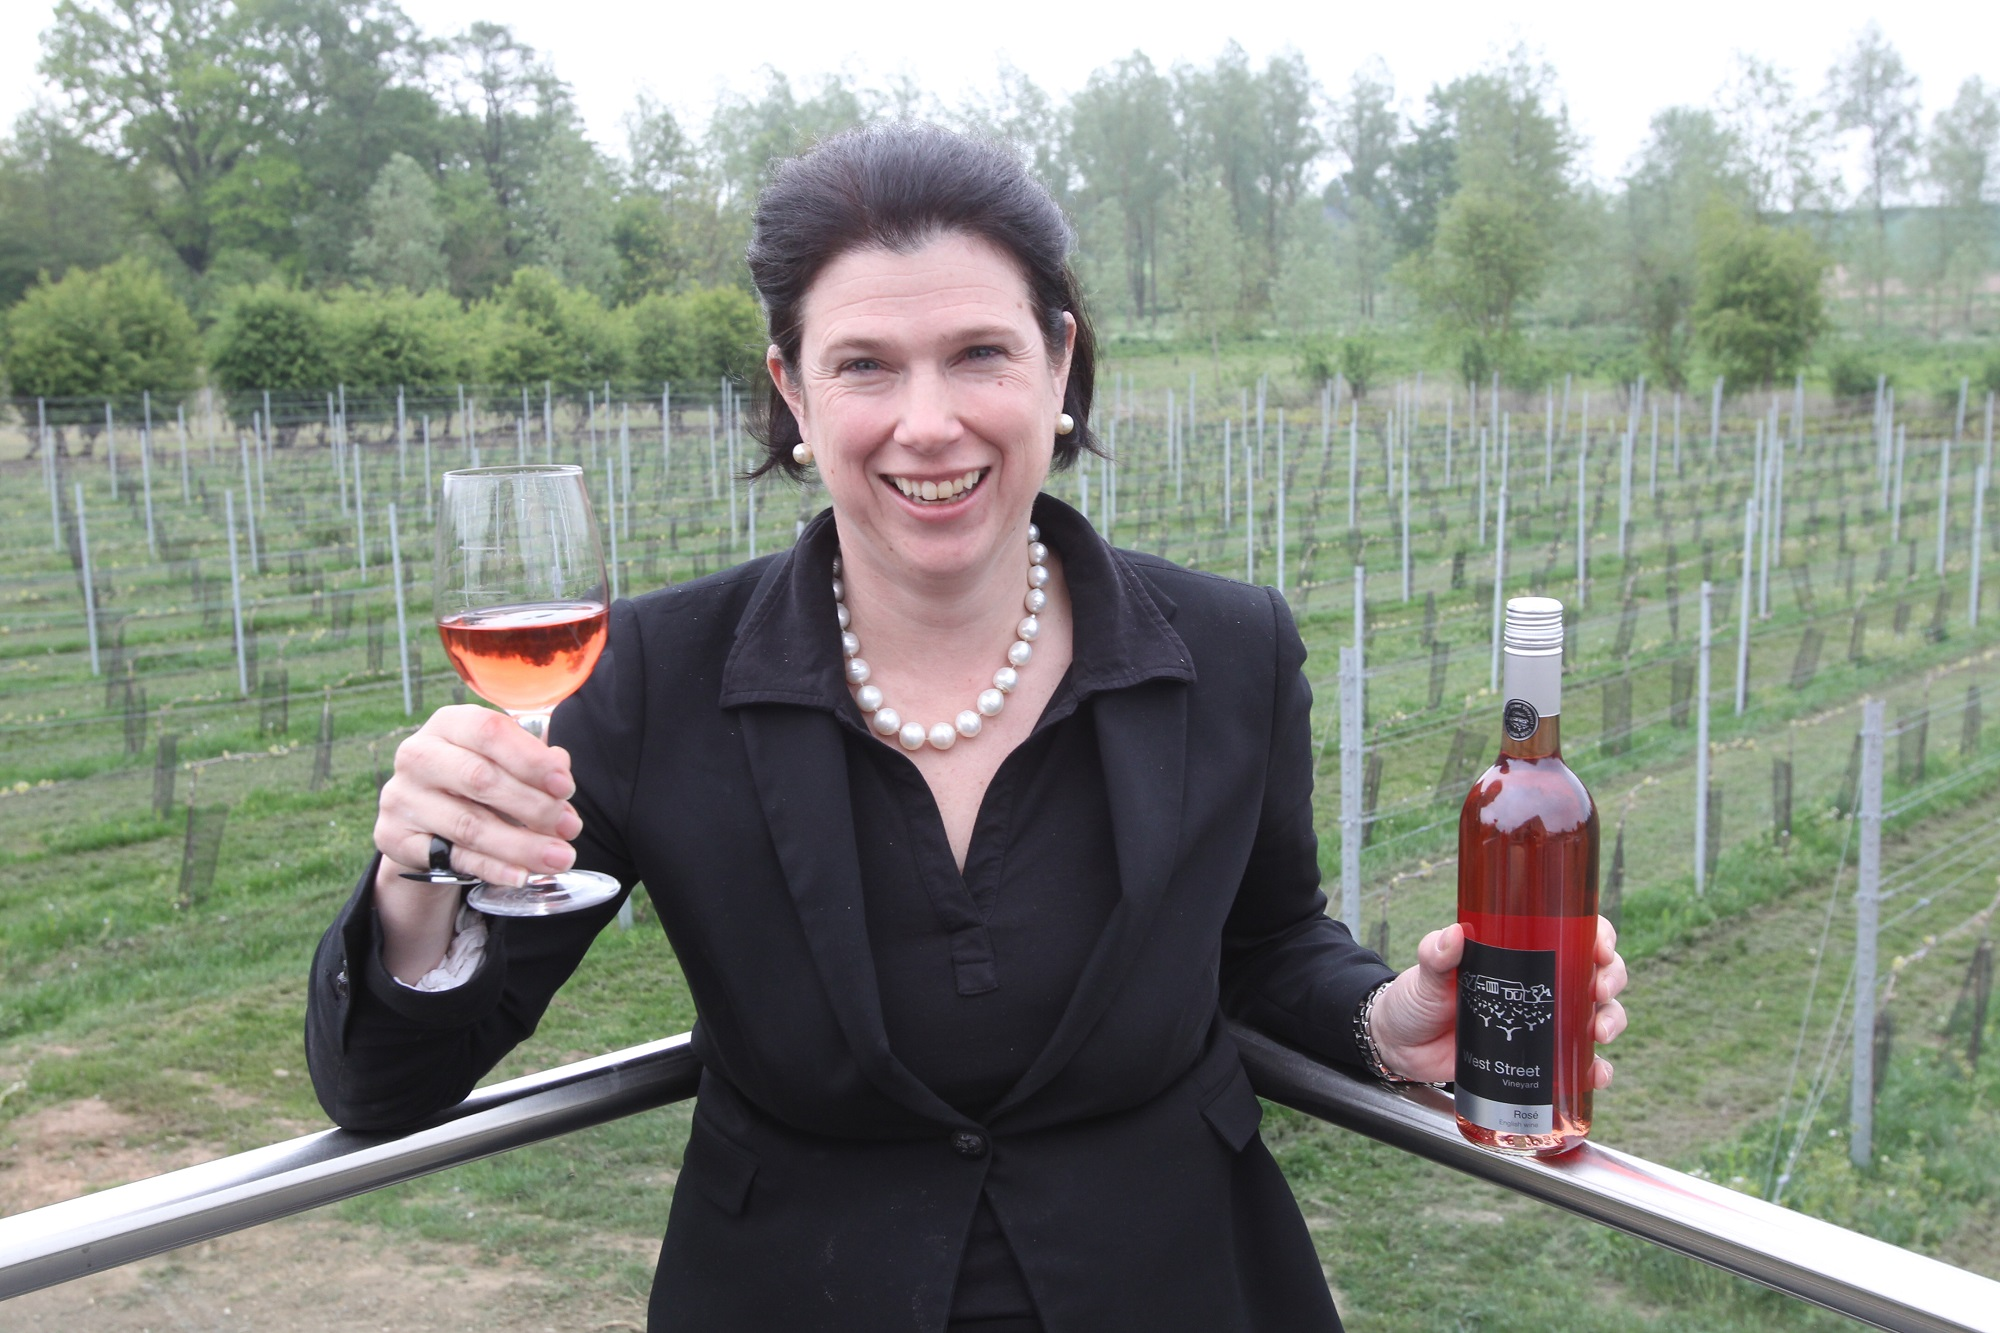 Jane Mohan, who runs the West Street Vineyard in Coggeshall